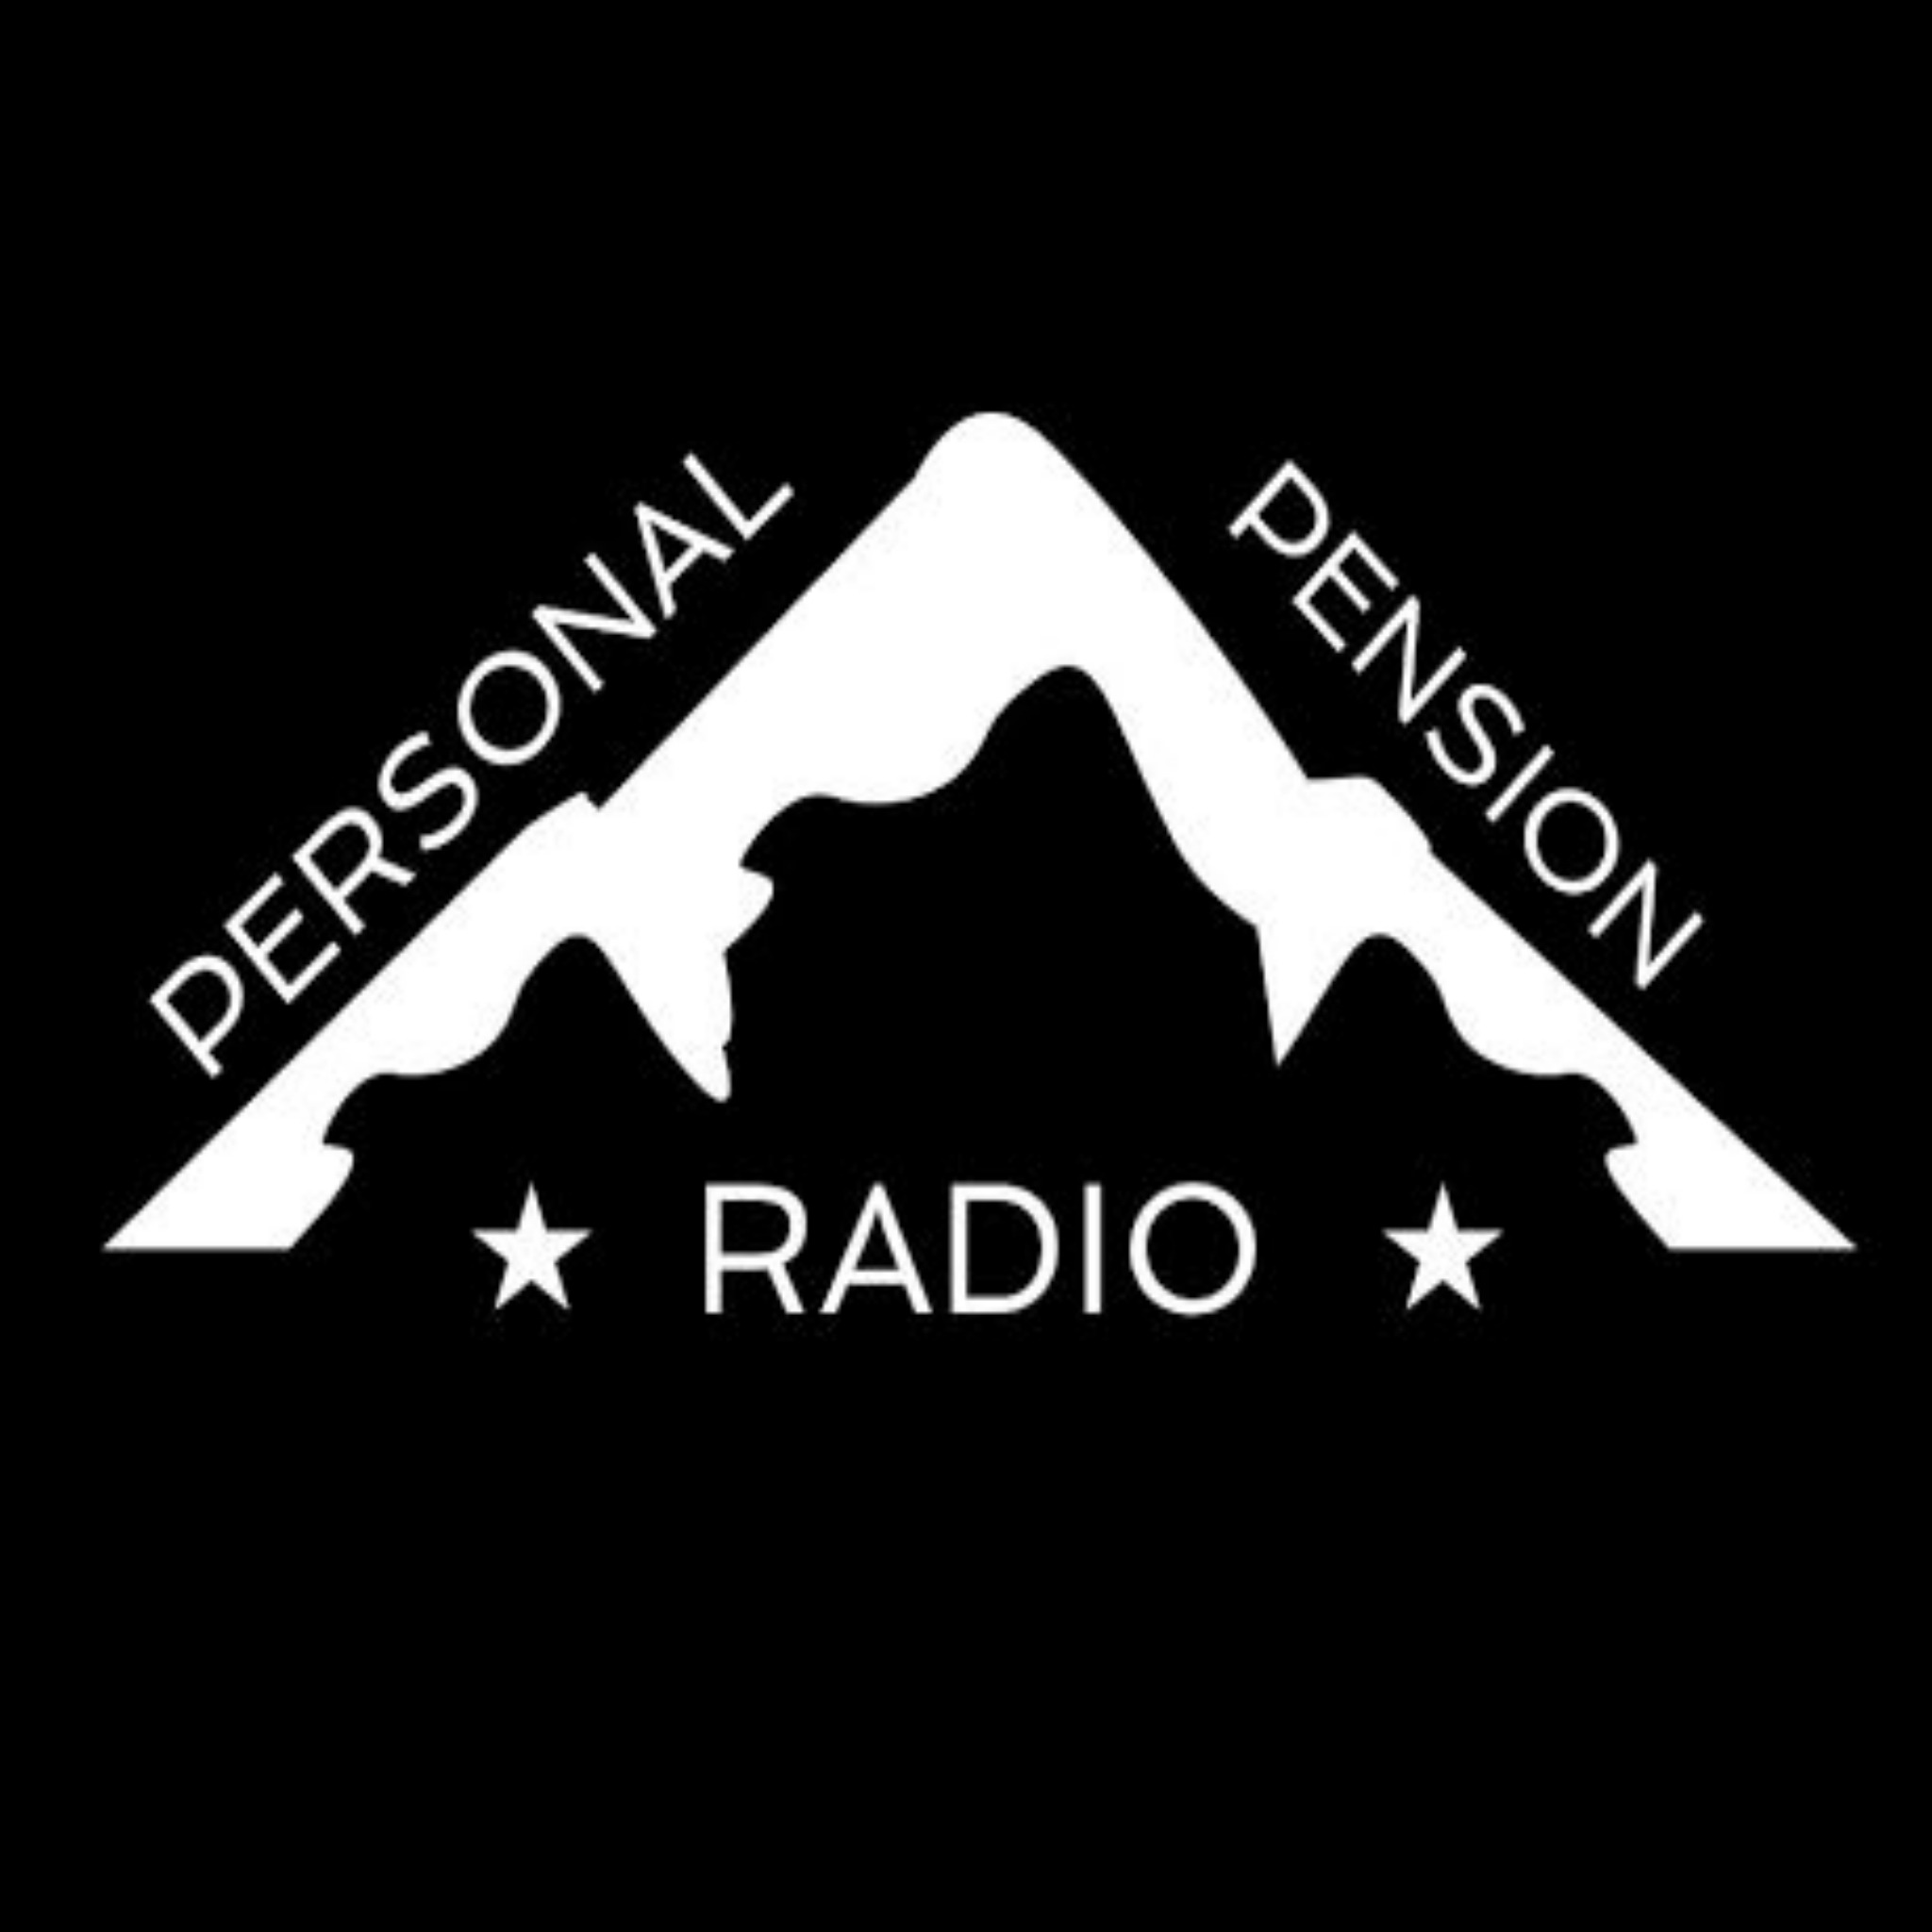 Personal Pension Radio! Unconventional Personal Finance | Income Planning | Retirement Planning | Financial Independence